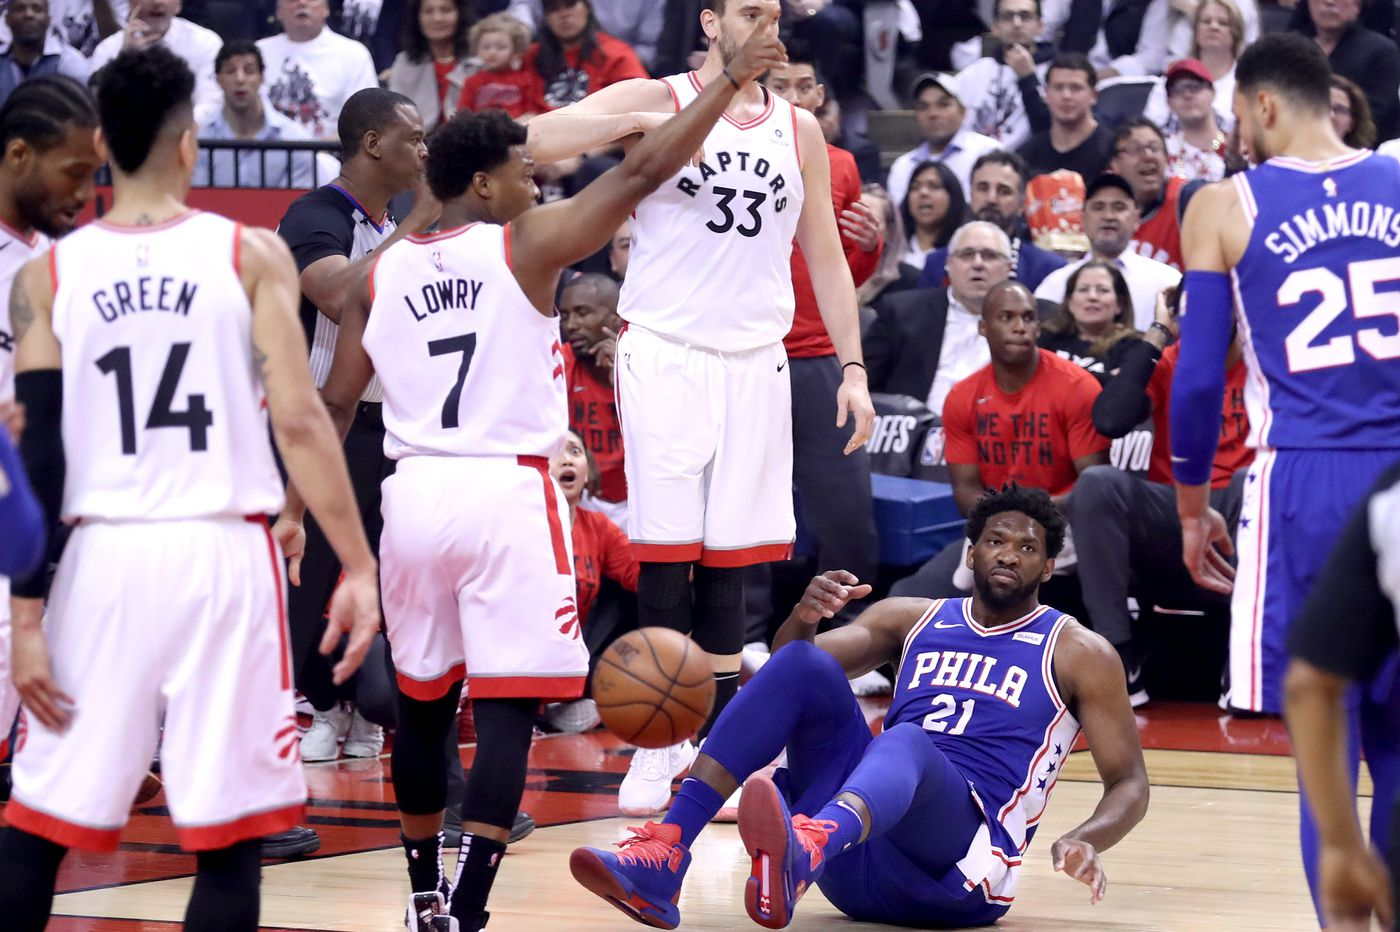 Joel Embiid led Sixers' surrender to Raptors in Game 5 of NBA playoff series   Marcus Hayes